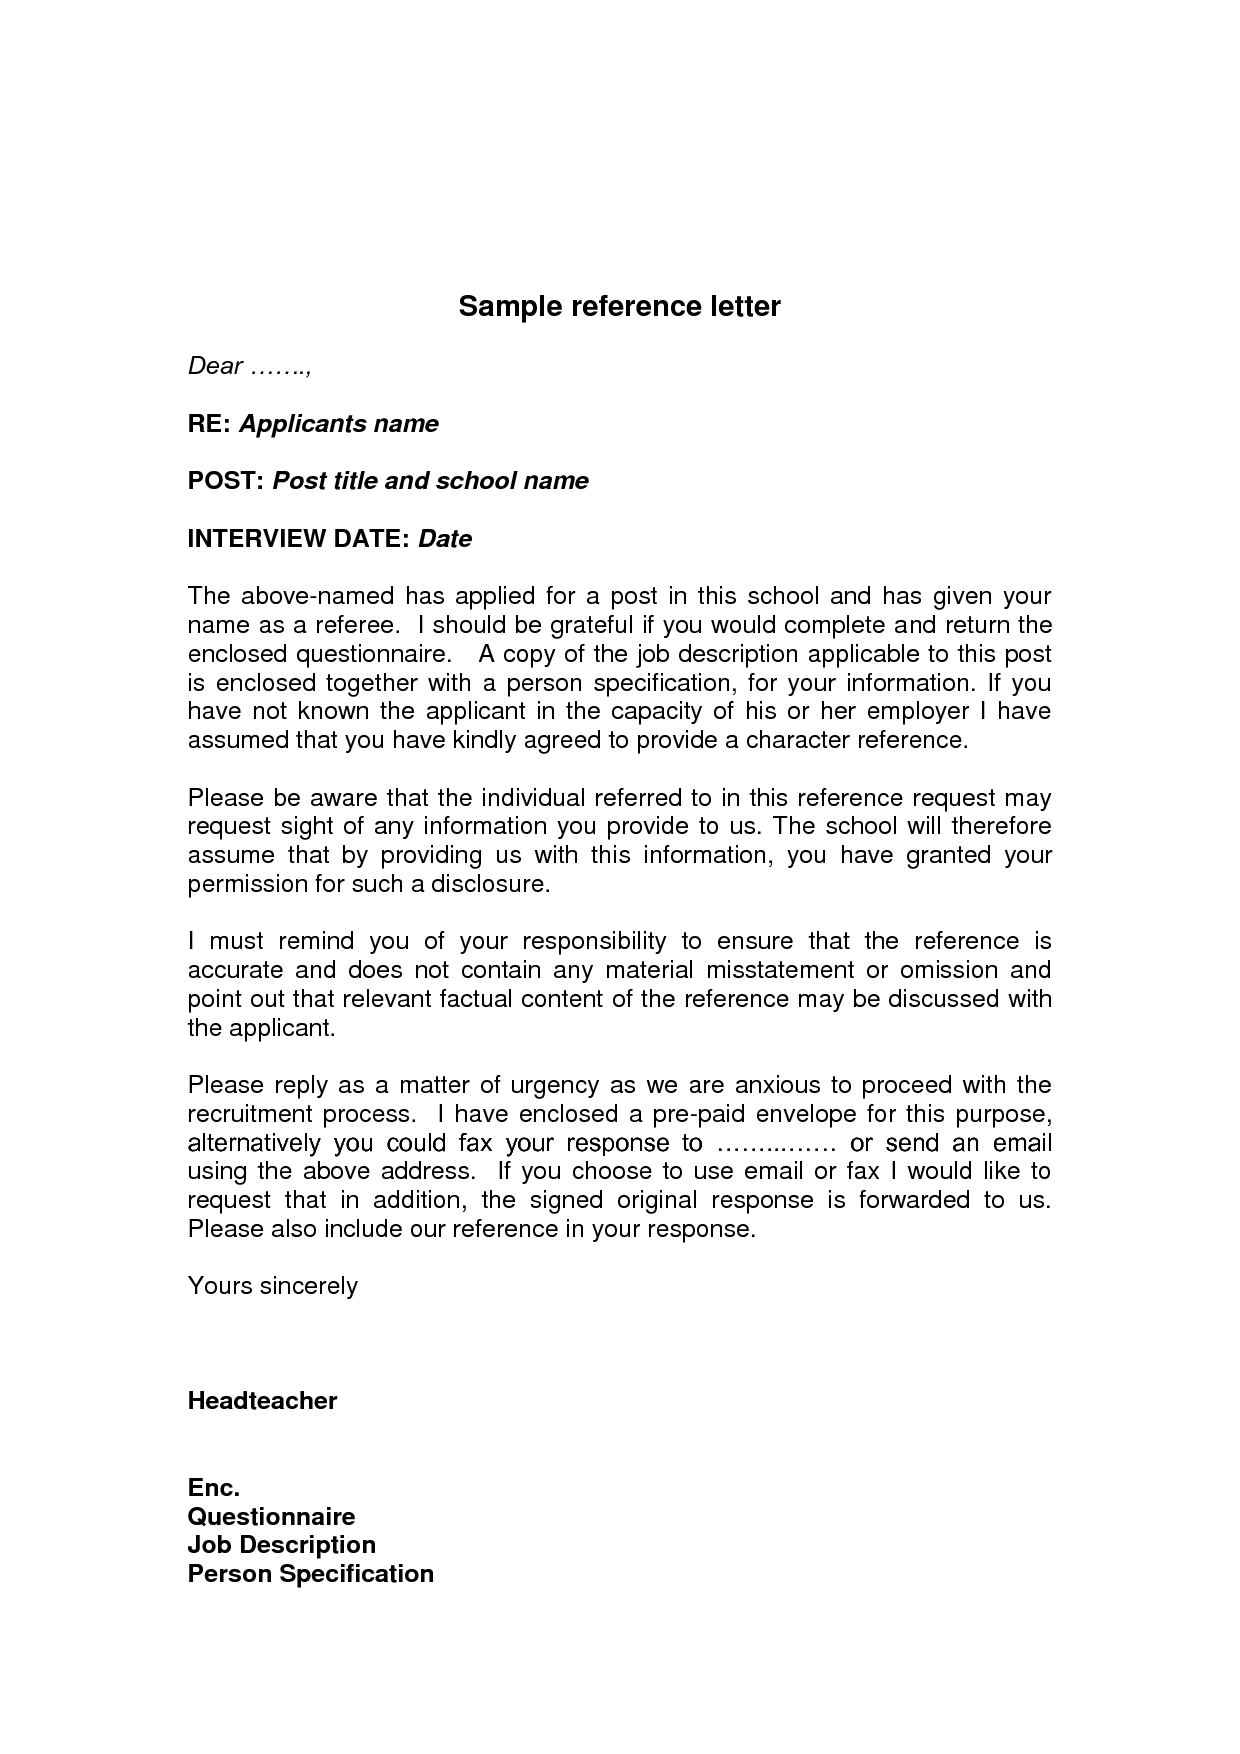 Reference letter examples templates free printable for Referance letter template